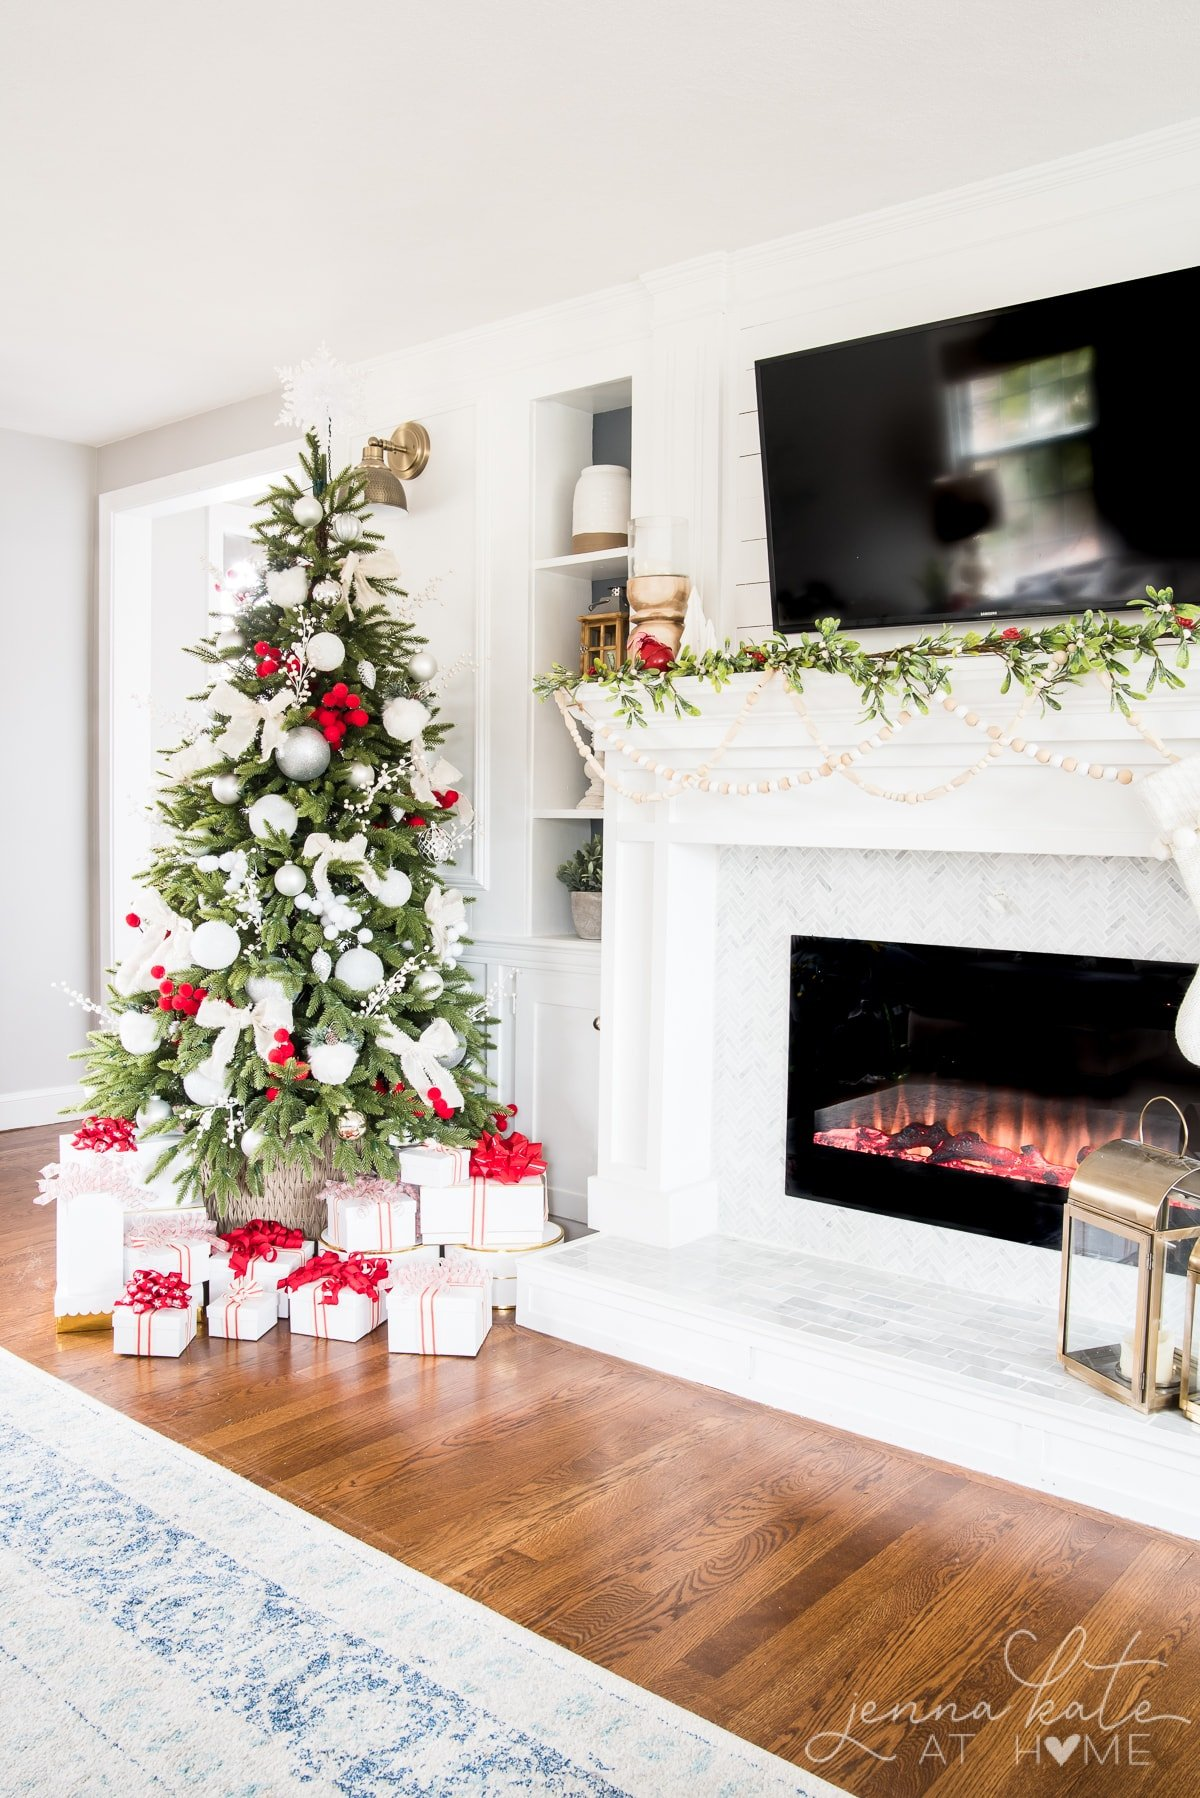 Living room fireplace mantel and Christmas tree decorated in shades of white and red